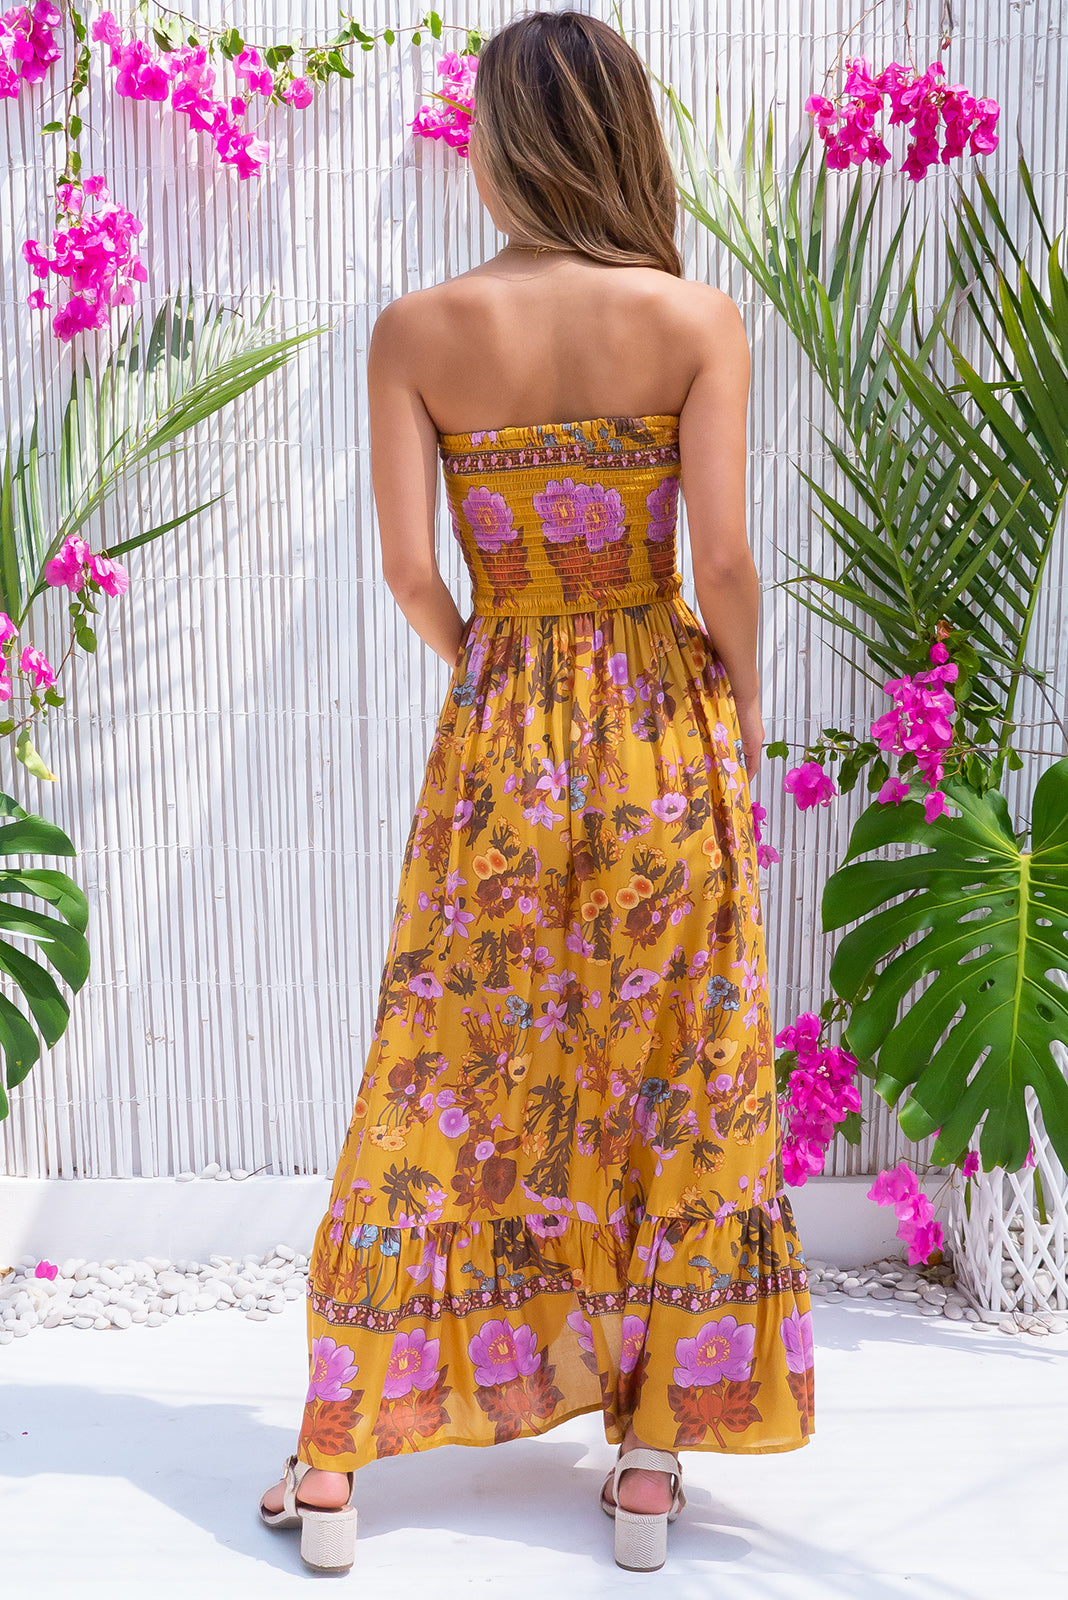 Poetry Rhodes Gold Maxi Dress, bohemian summer style, side pockets, elasticated shirred bodice, deep caramel gold base with medium floral print featuring pops of purple.